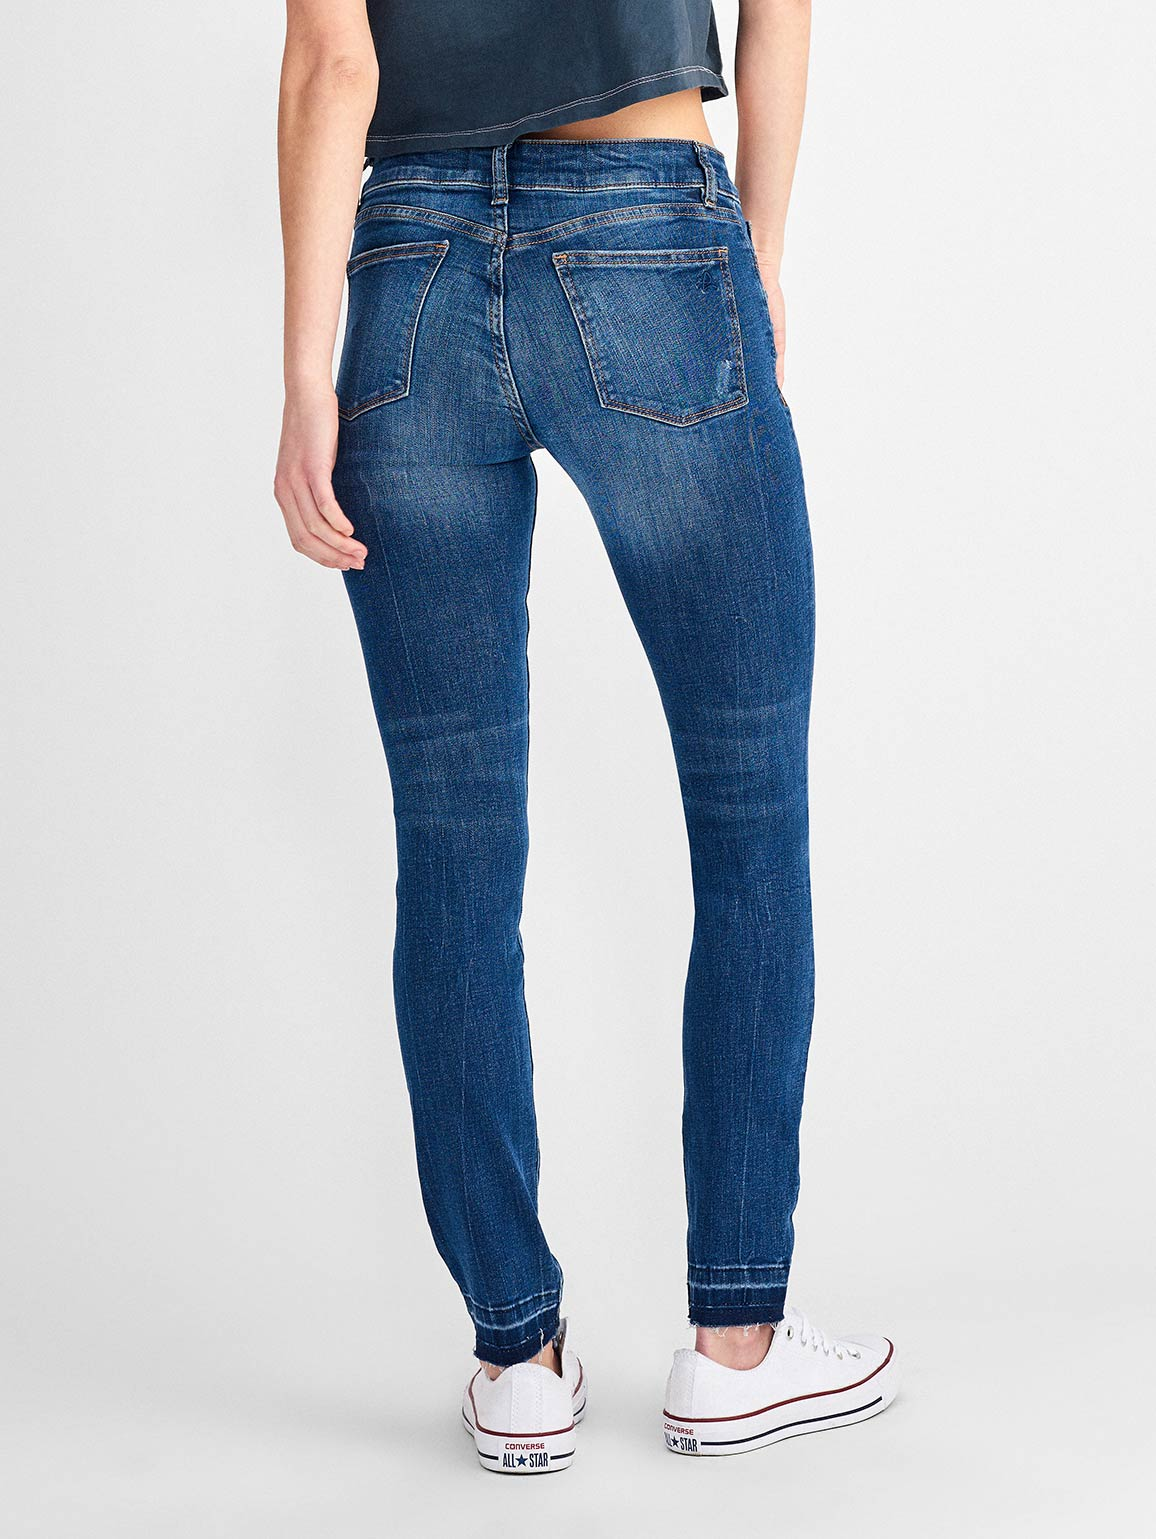 Florence Mid Rise Skinny | Strive